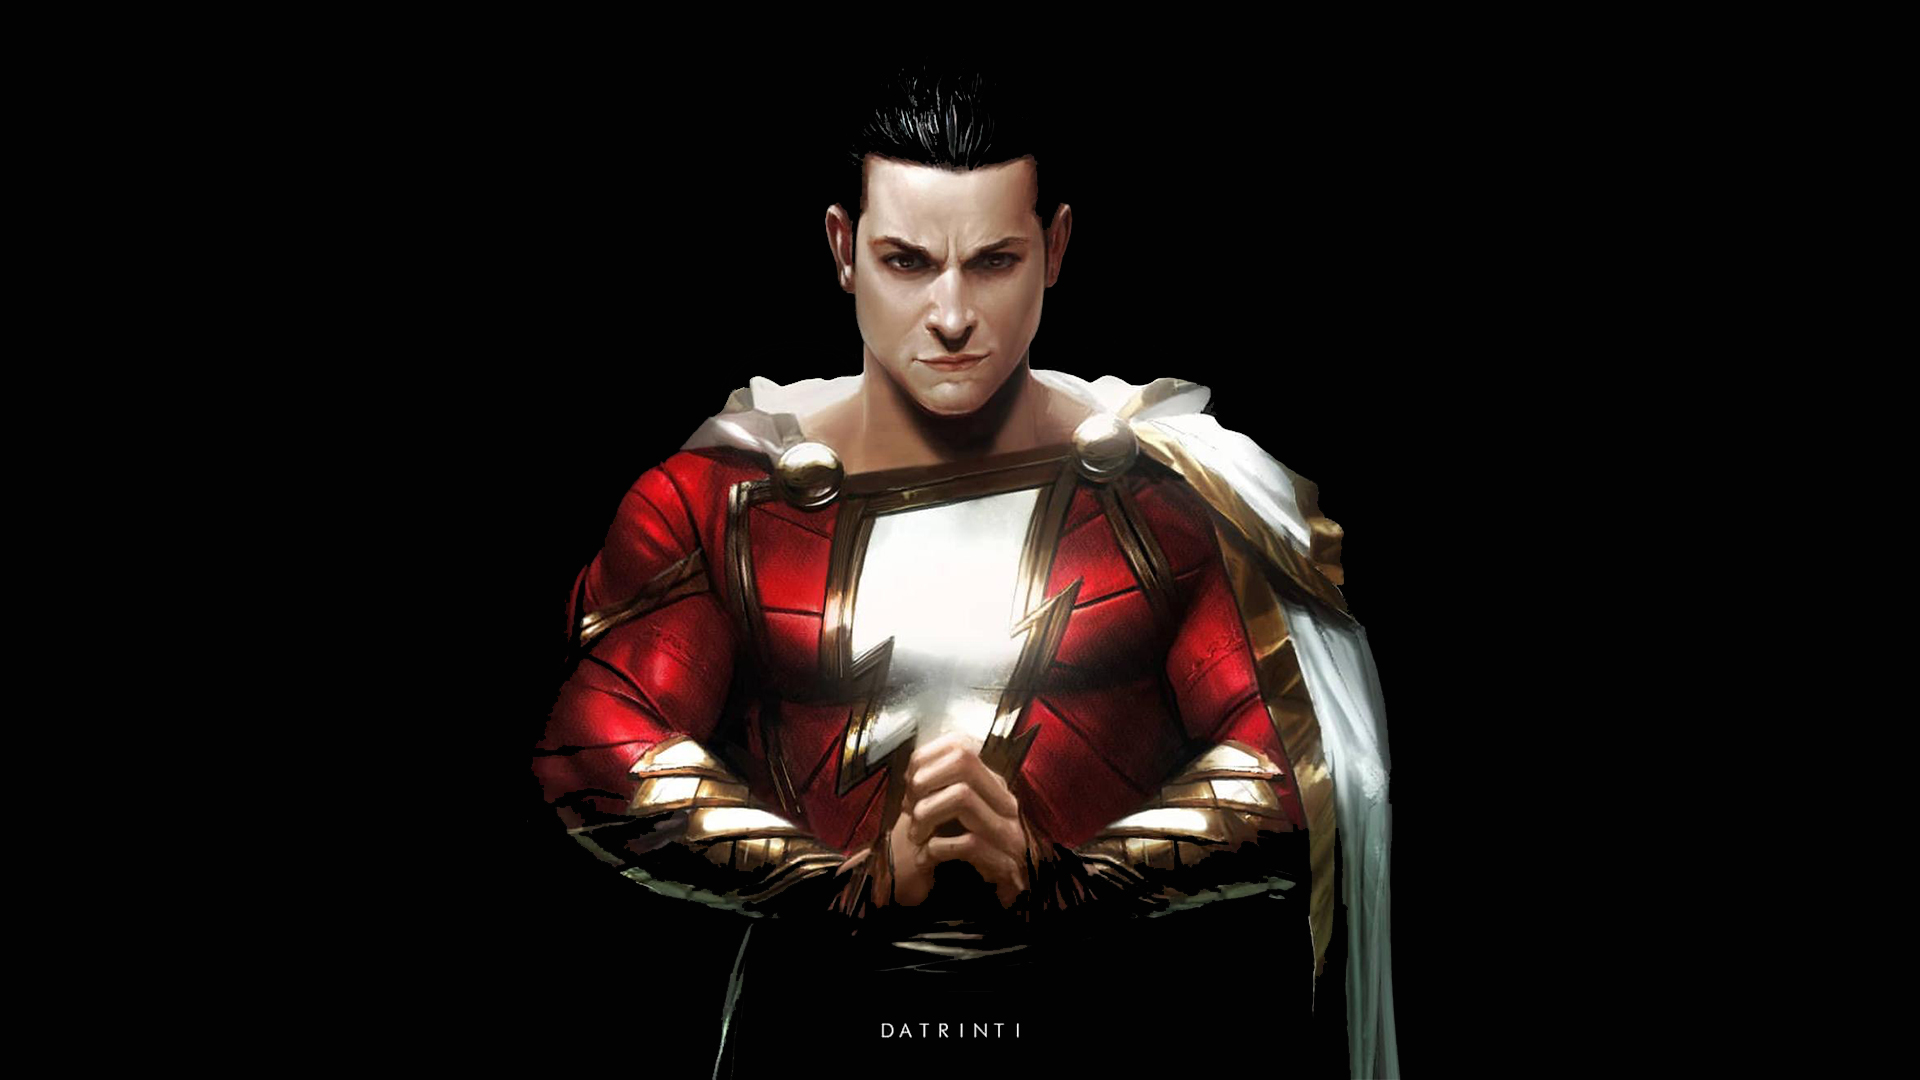 2019 Movie Photography Art: Shazam Artwork, HD Superheroes, 4k Wallpapers, Images